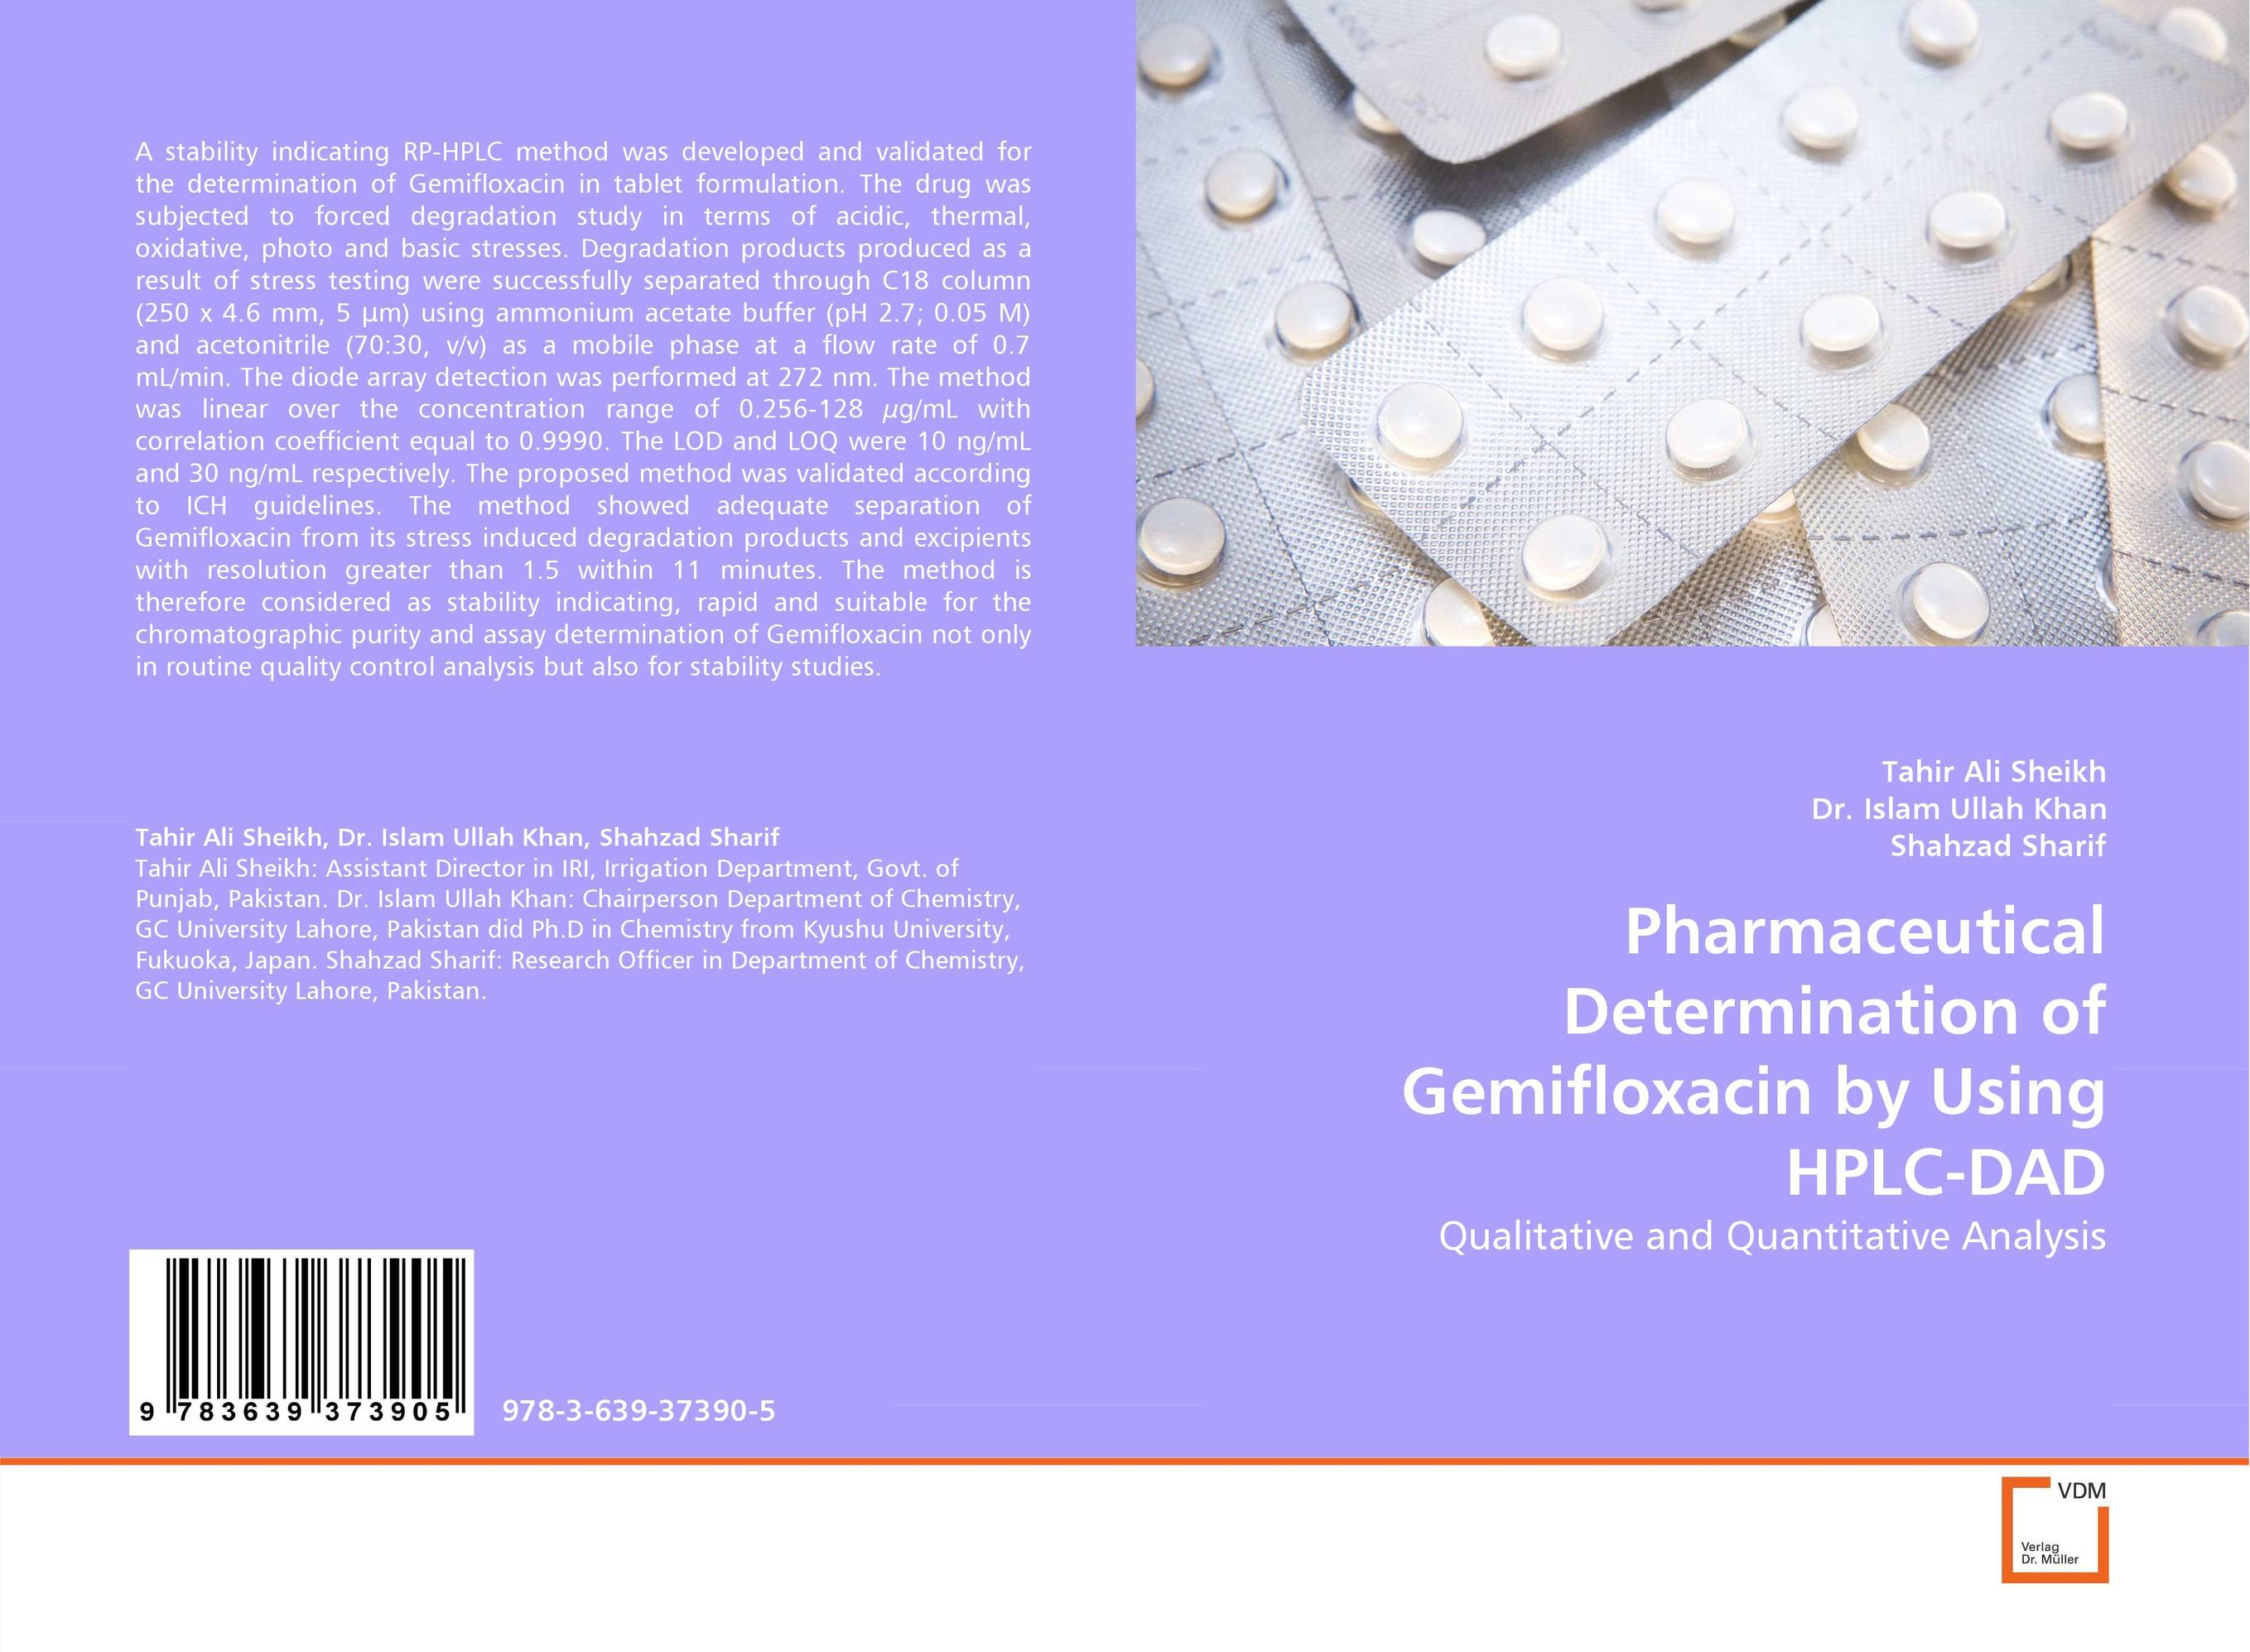 Pharmaceutical Determination of Gemifloxacin by Using HPLC-DAD